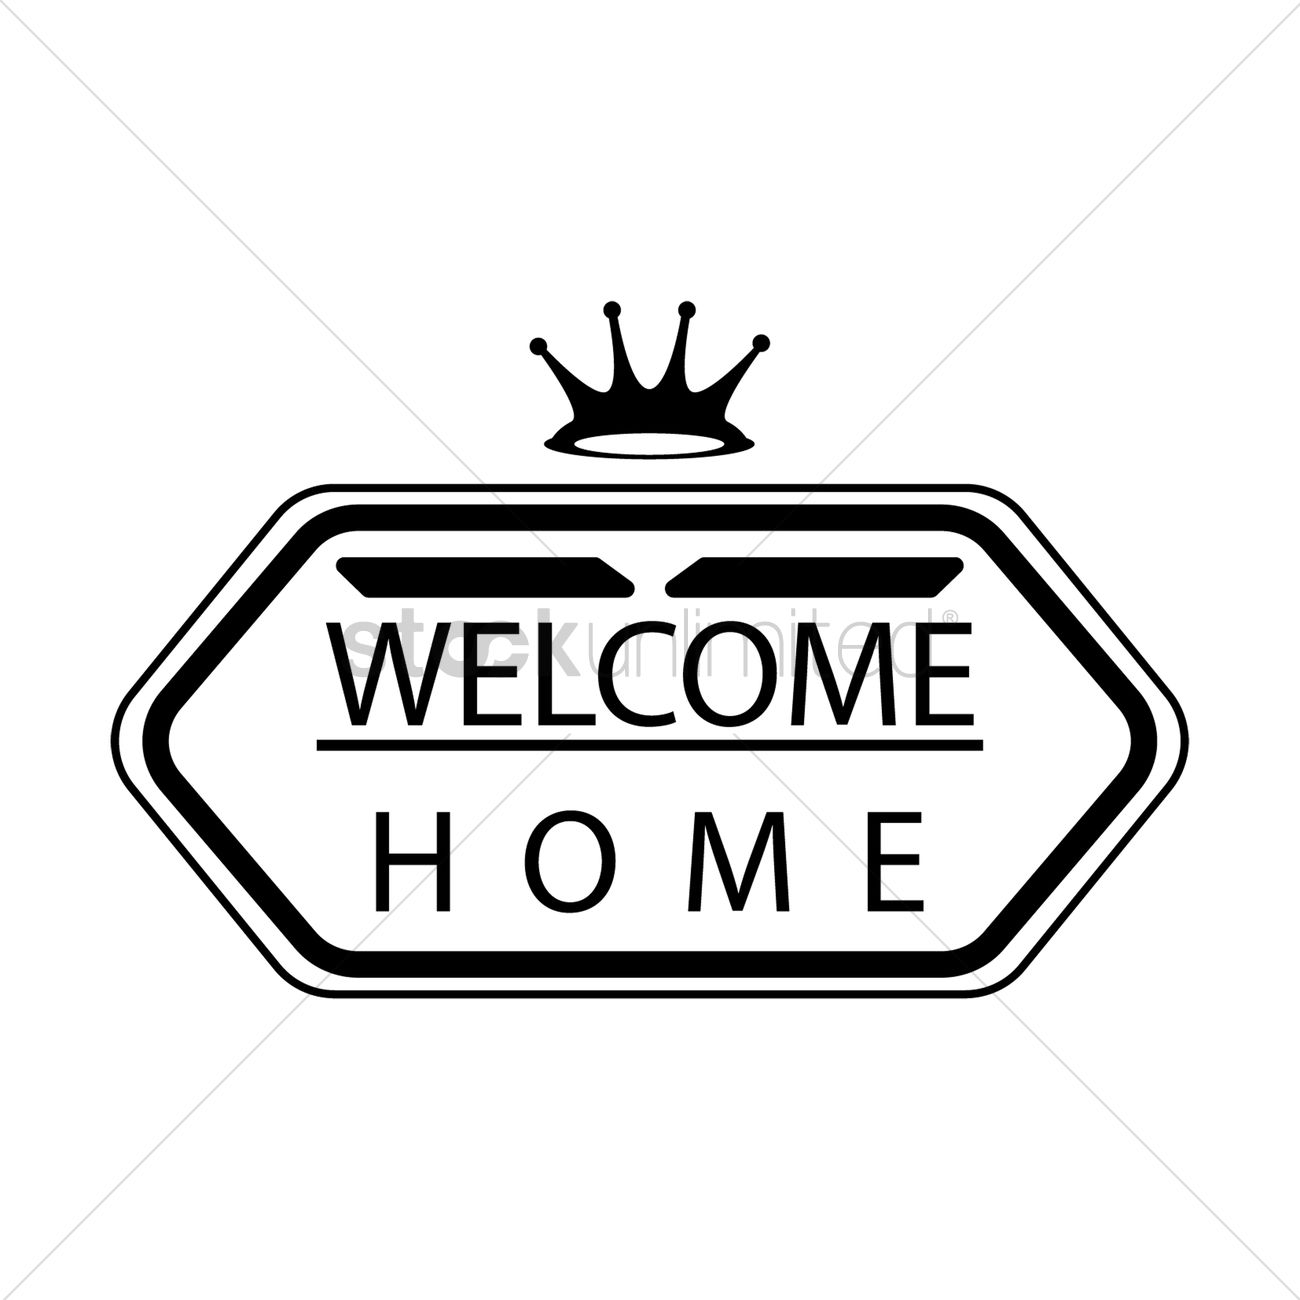 1300x1300 Welcome Home Vector Image